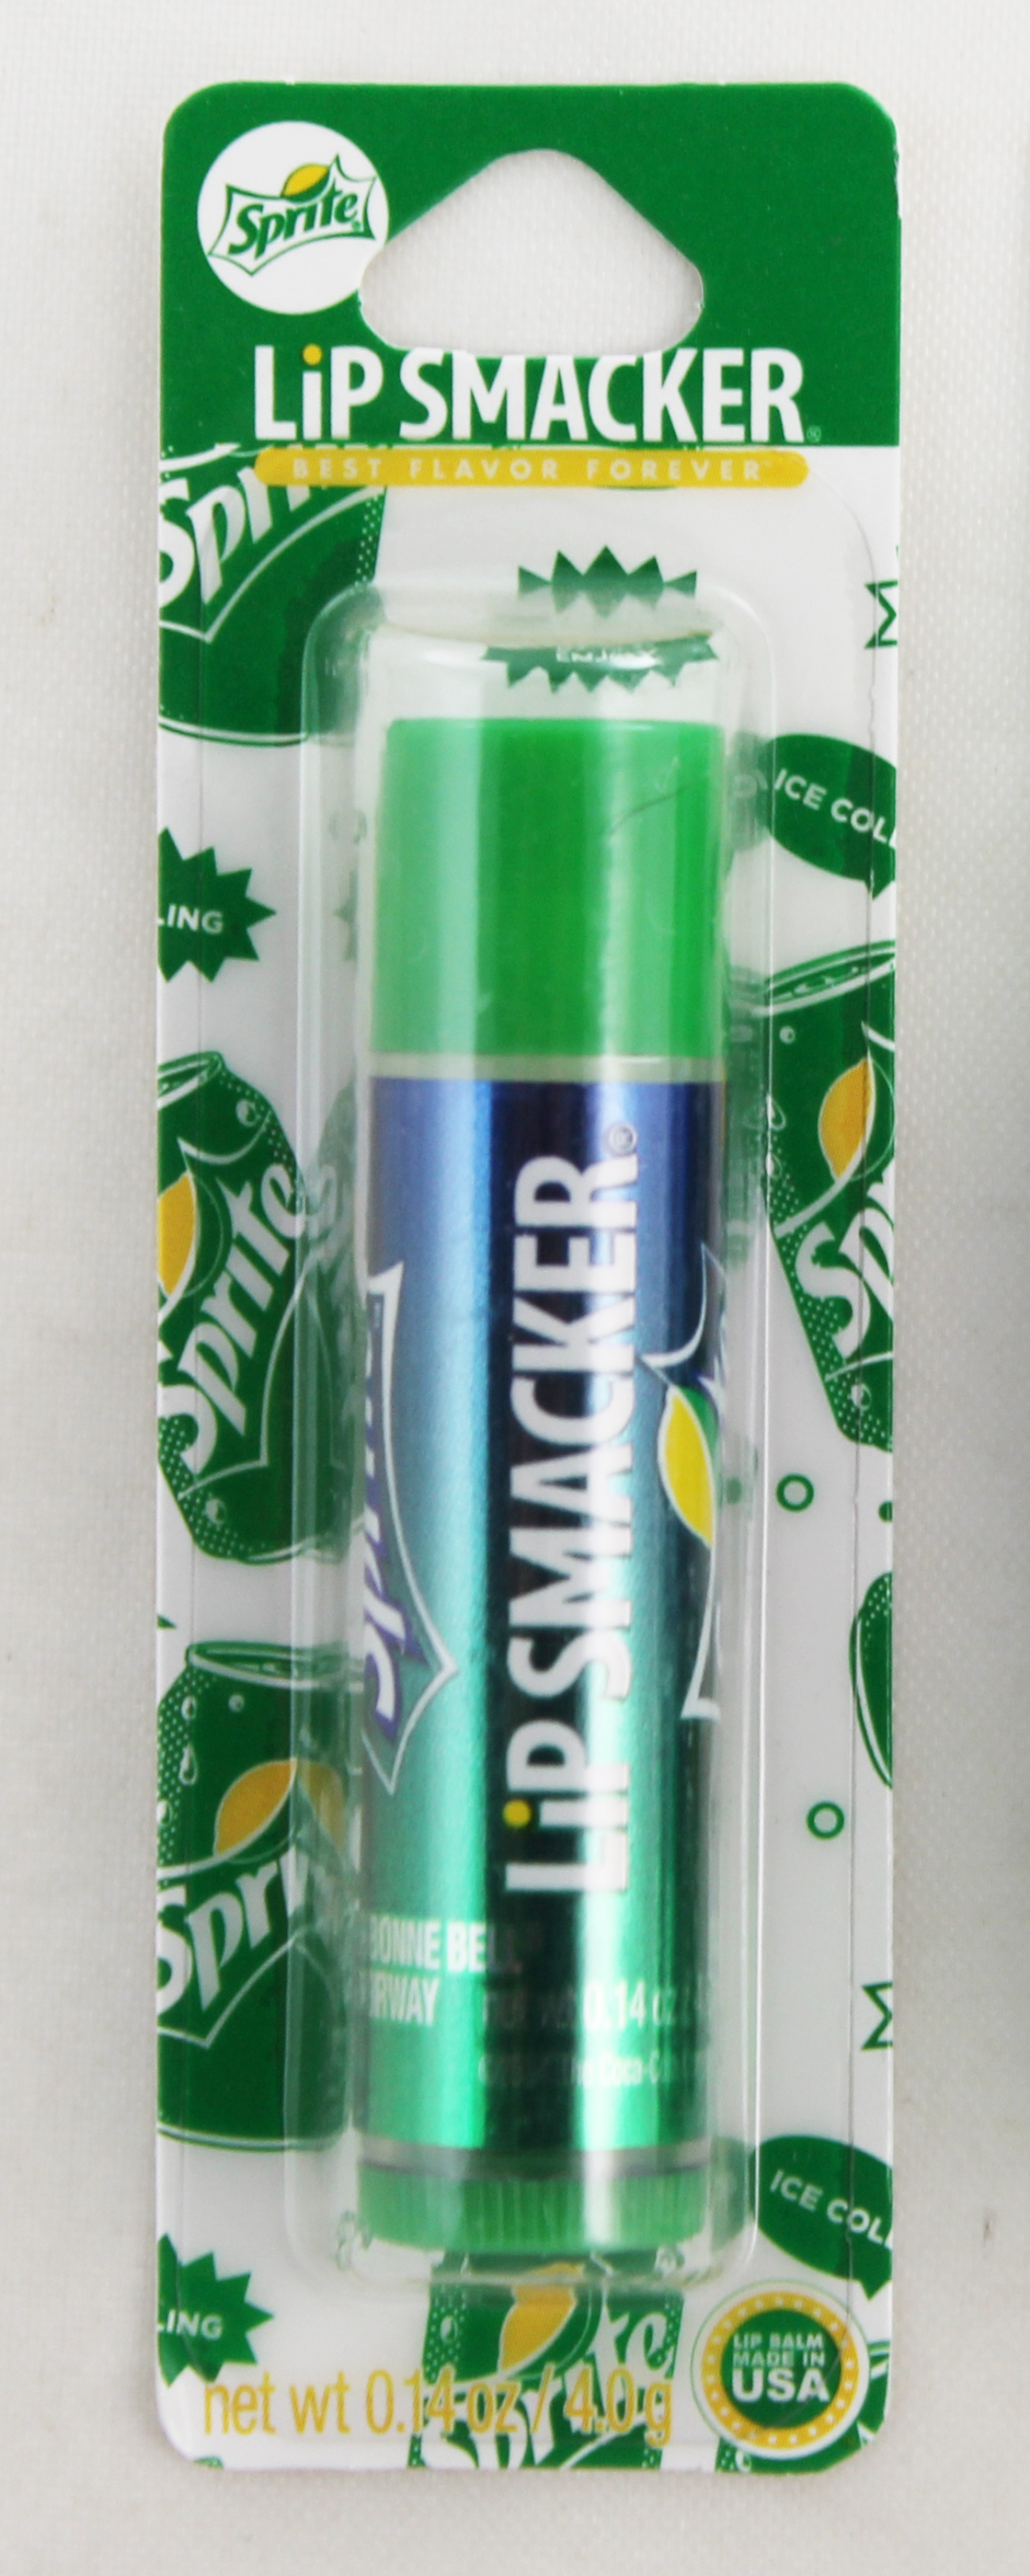 Lip Smackers by Bonne Bell Sprite Flavored Lip Balm Chap Stick. All Carded